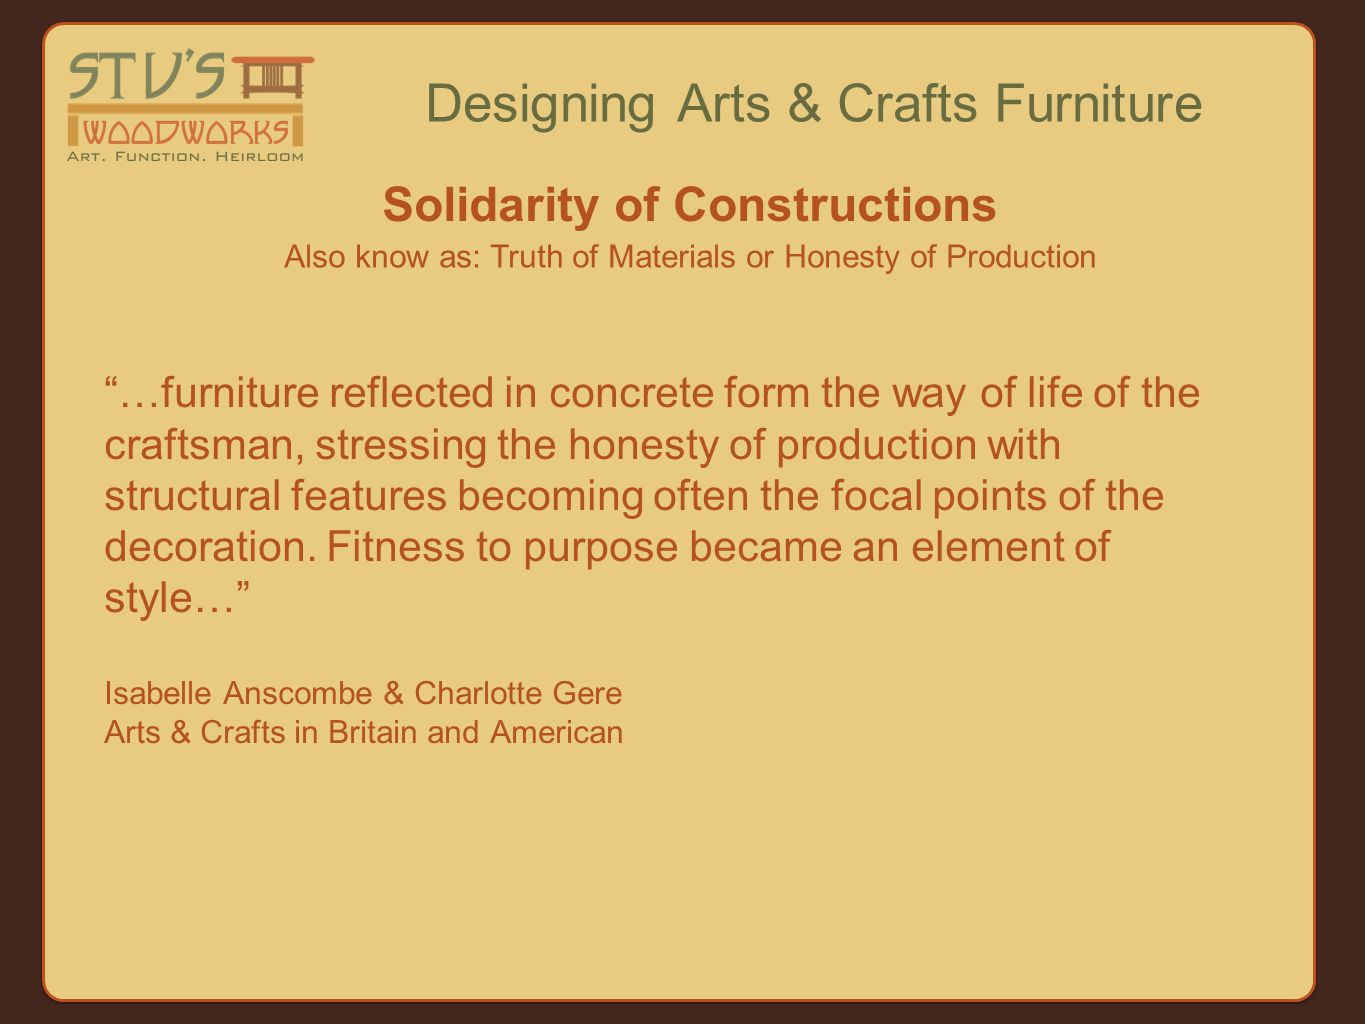 …furniture reflected in concrete form the way of life of the craftsman, stressing the honesty of production with structural features becoming often the focal points of the decoration.